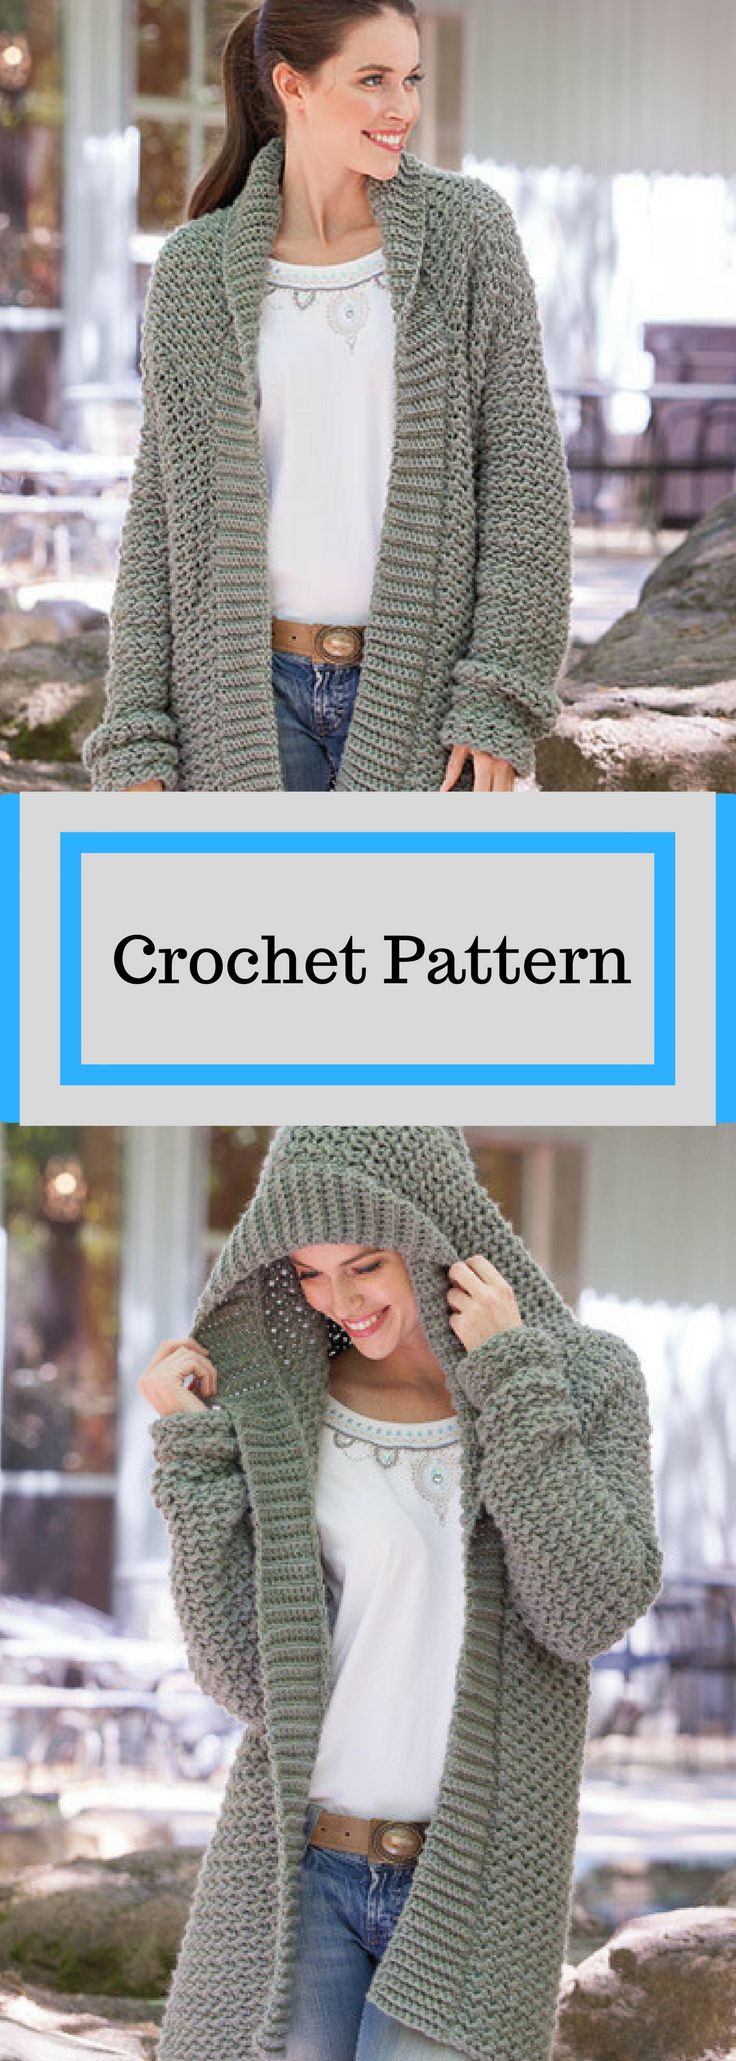 Weekend Casual Hooded Sweater Crochet Pattern Available for Electronic Download #ad #CrochetGifts